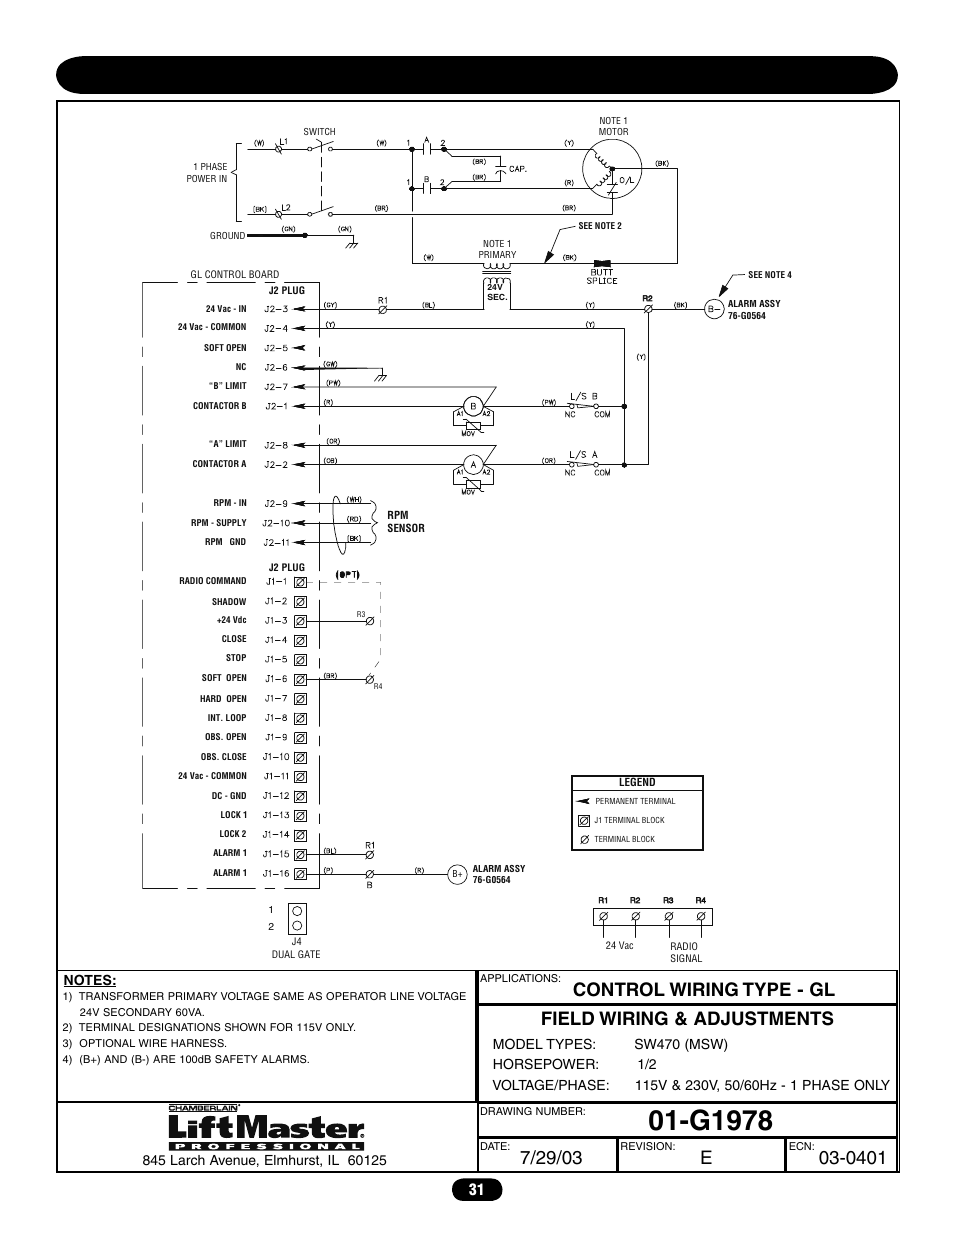 Lift Master Wiring Diagram Single Phase Great Design Of Genie Pro Garage Door Opener Sw470 G1978 Chamberlain Liftmaster Rh Manualsdir Com Sensor